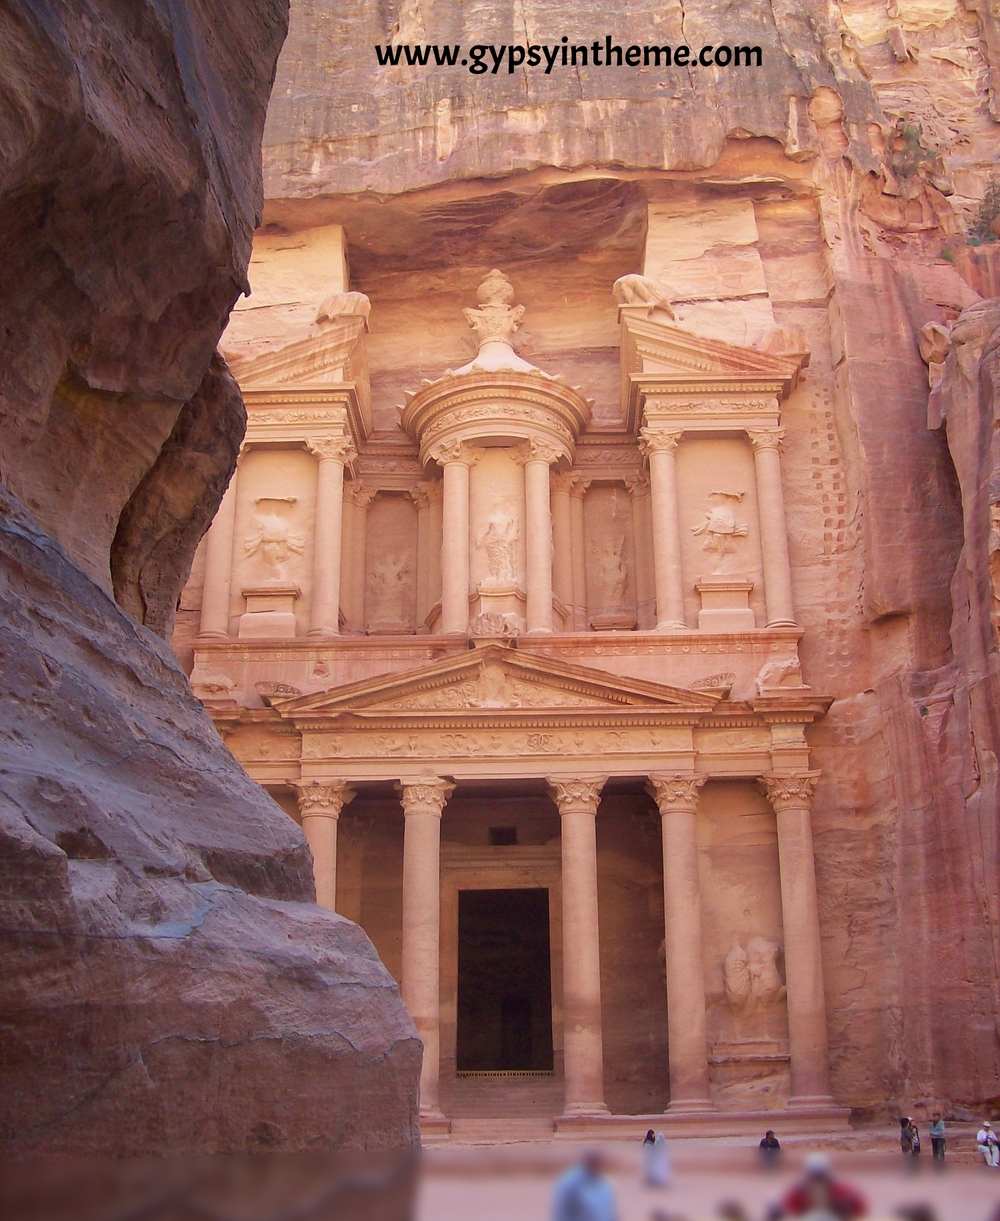 Our first glimpse of the Treasury in Petra.